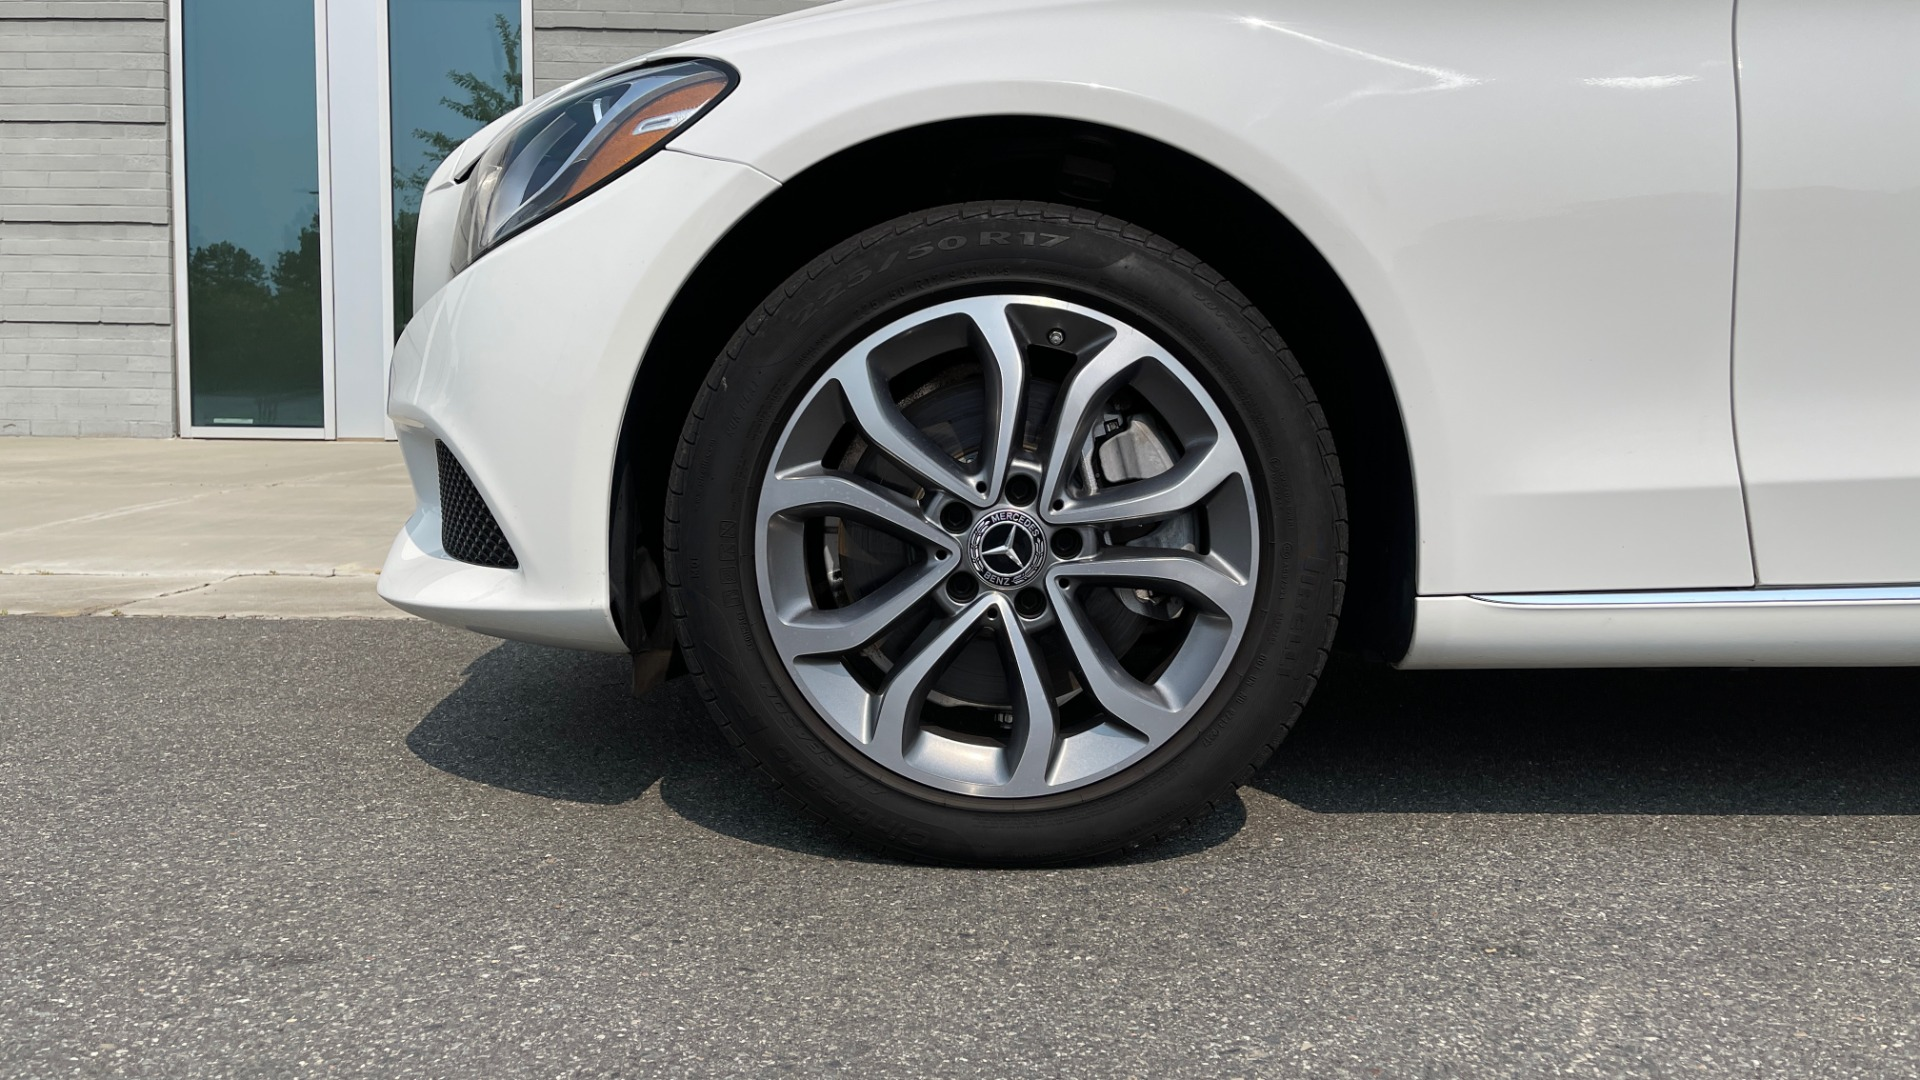 Used 2018 Mercedes-Benz C-Class C 300 4MATIC / PREMIUM / BURMESTER / HTD STS / SUNROOF / REARVIEW for sale $33,995 at Formula Imports in Charlotte NC 28227 59